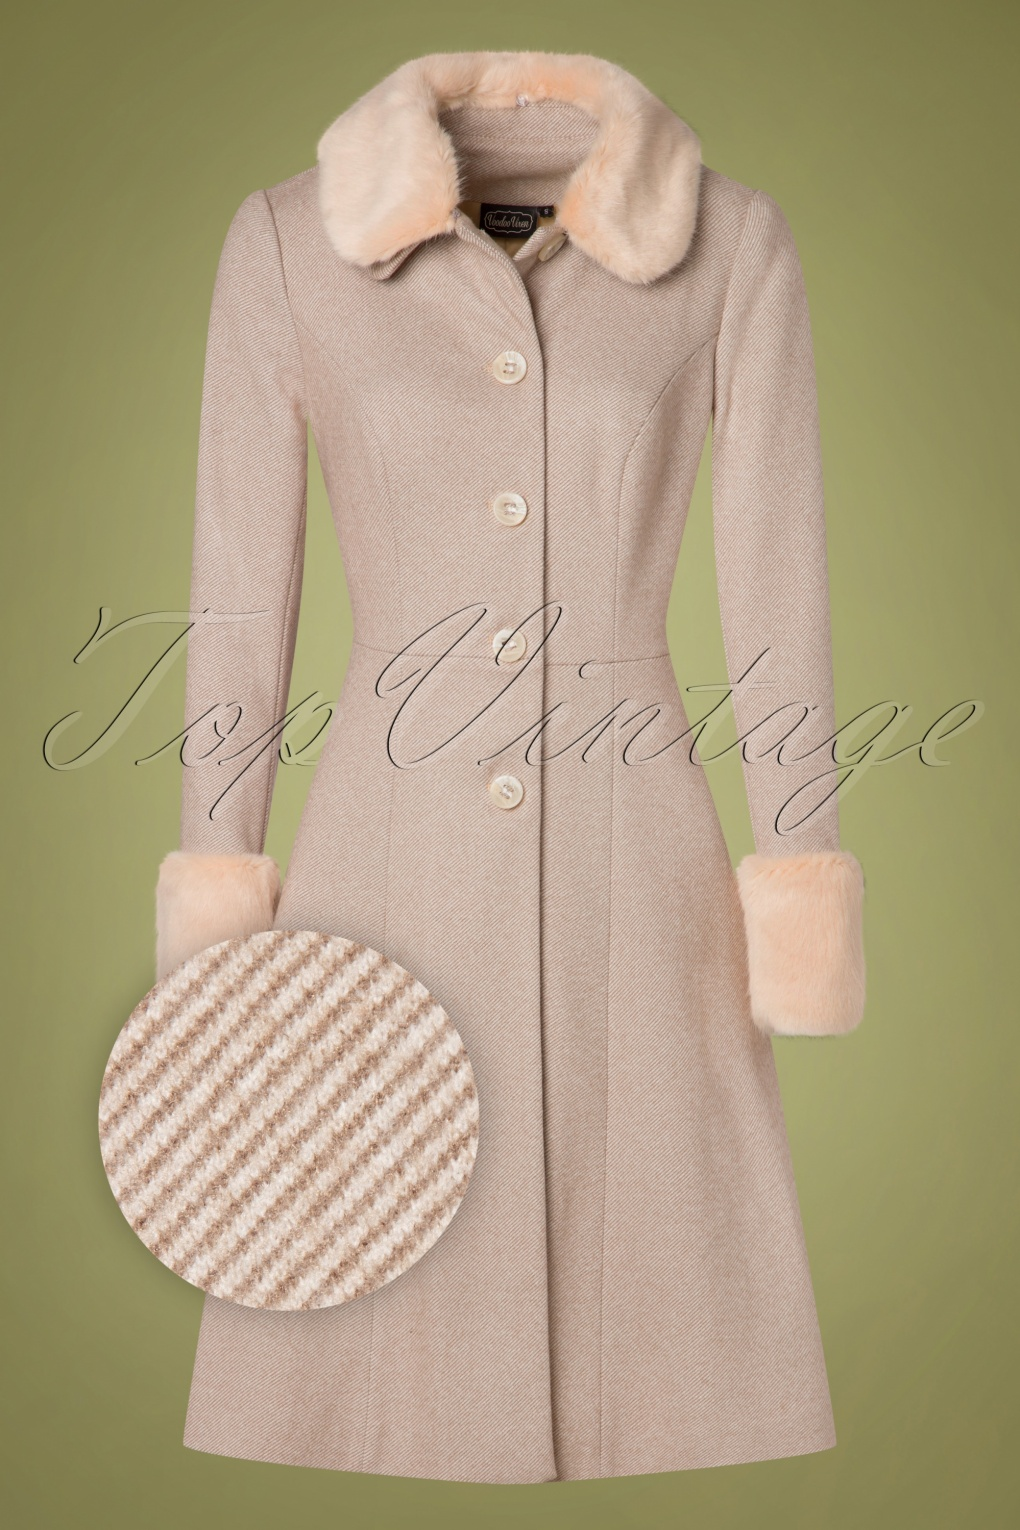 1950s Jackets, Coats, Bolero | Swing, Pin Up, Rockabilly 50s Louisa May Coat in Sand £113.60 AT vintagedancer.com